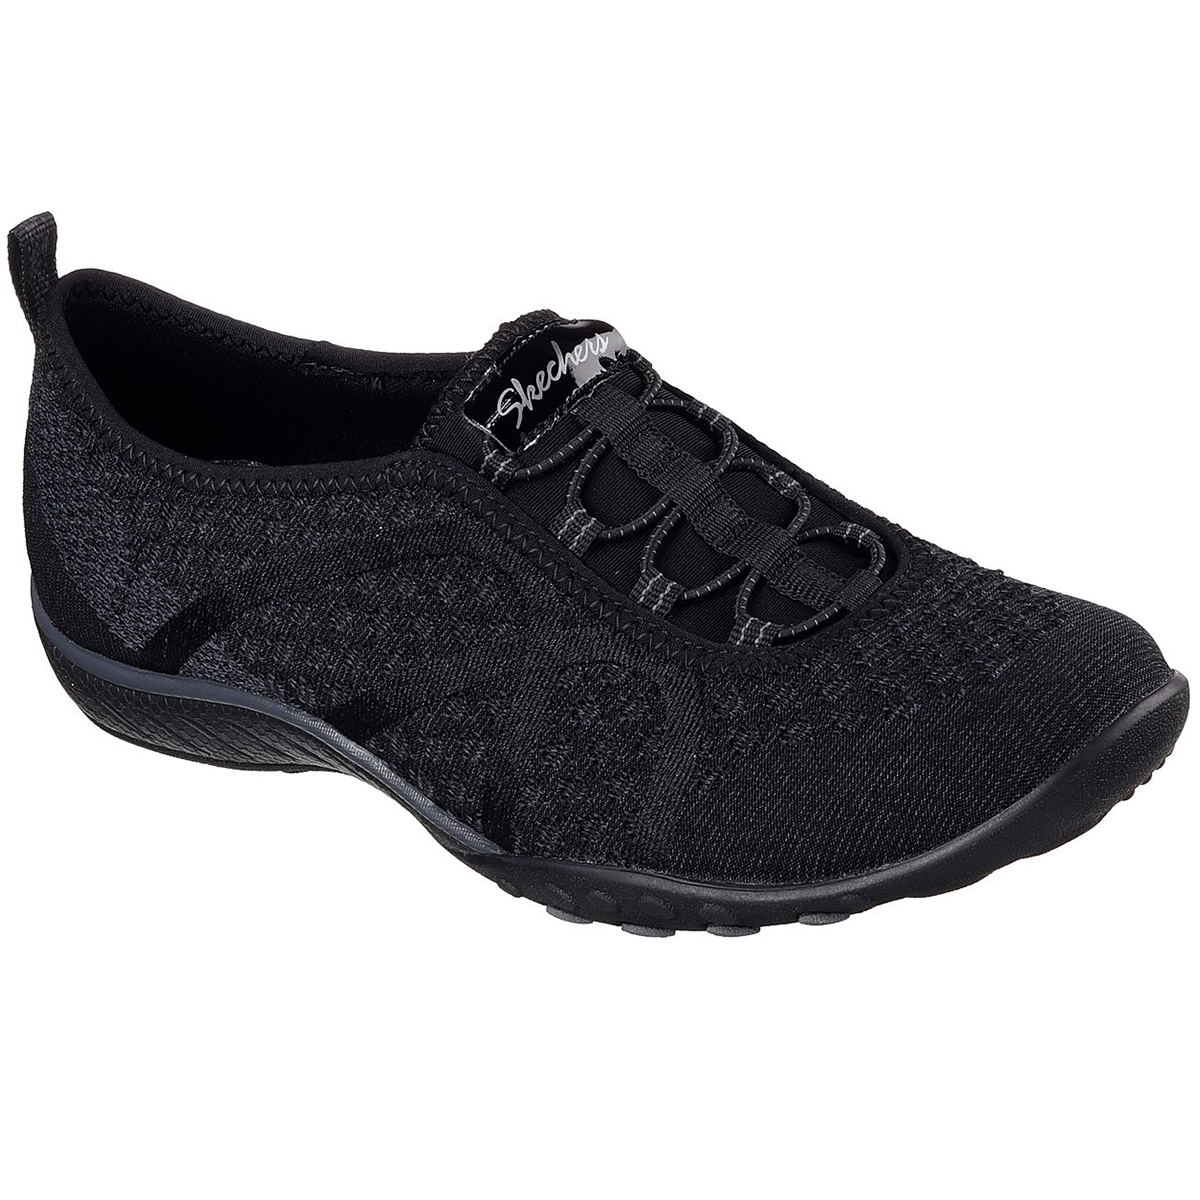 Skechers Women's Relaxed Fit: Breathe Easy - Fortune-Knit Sneakers - Black, 8